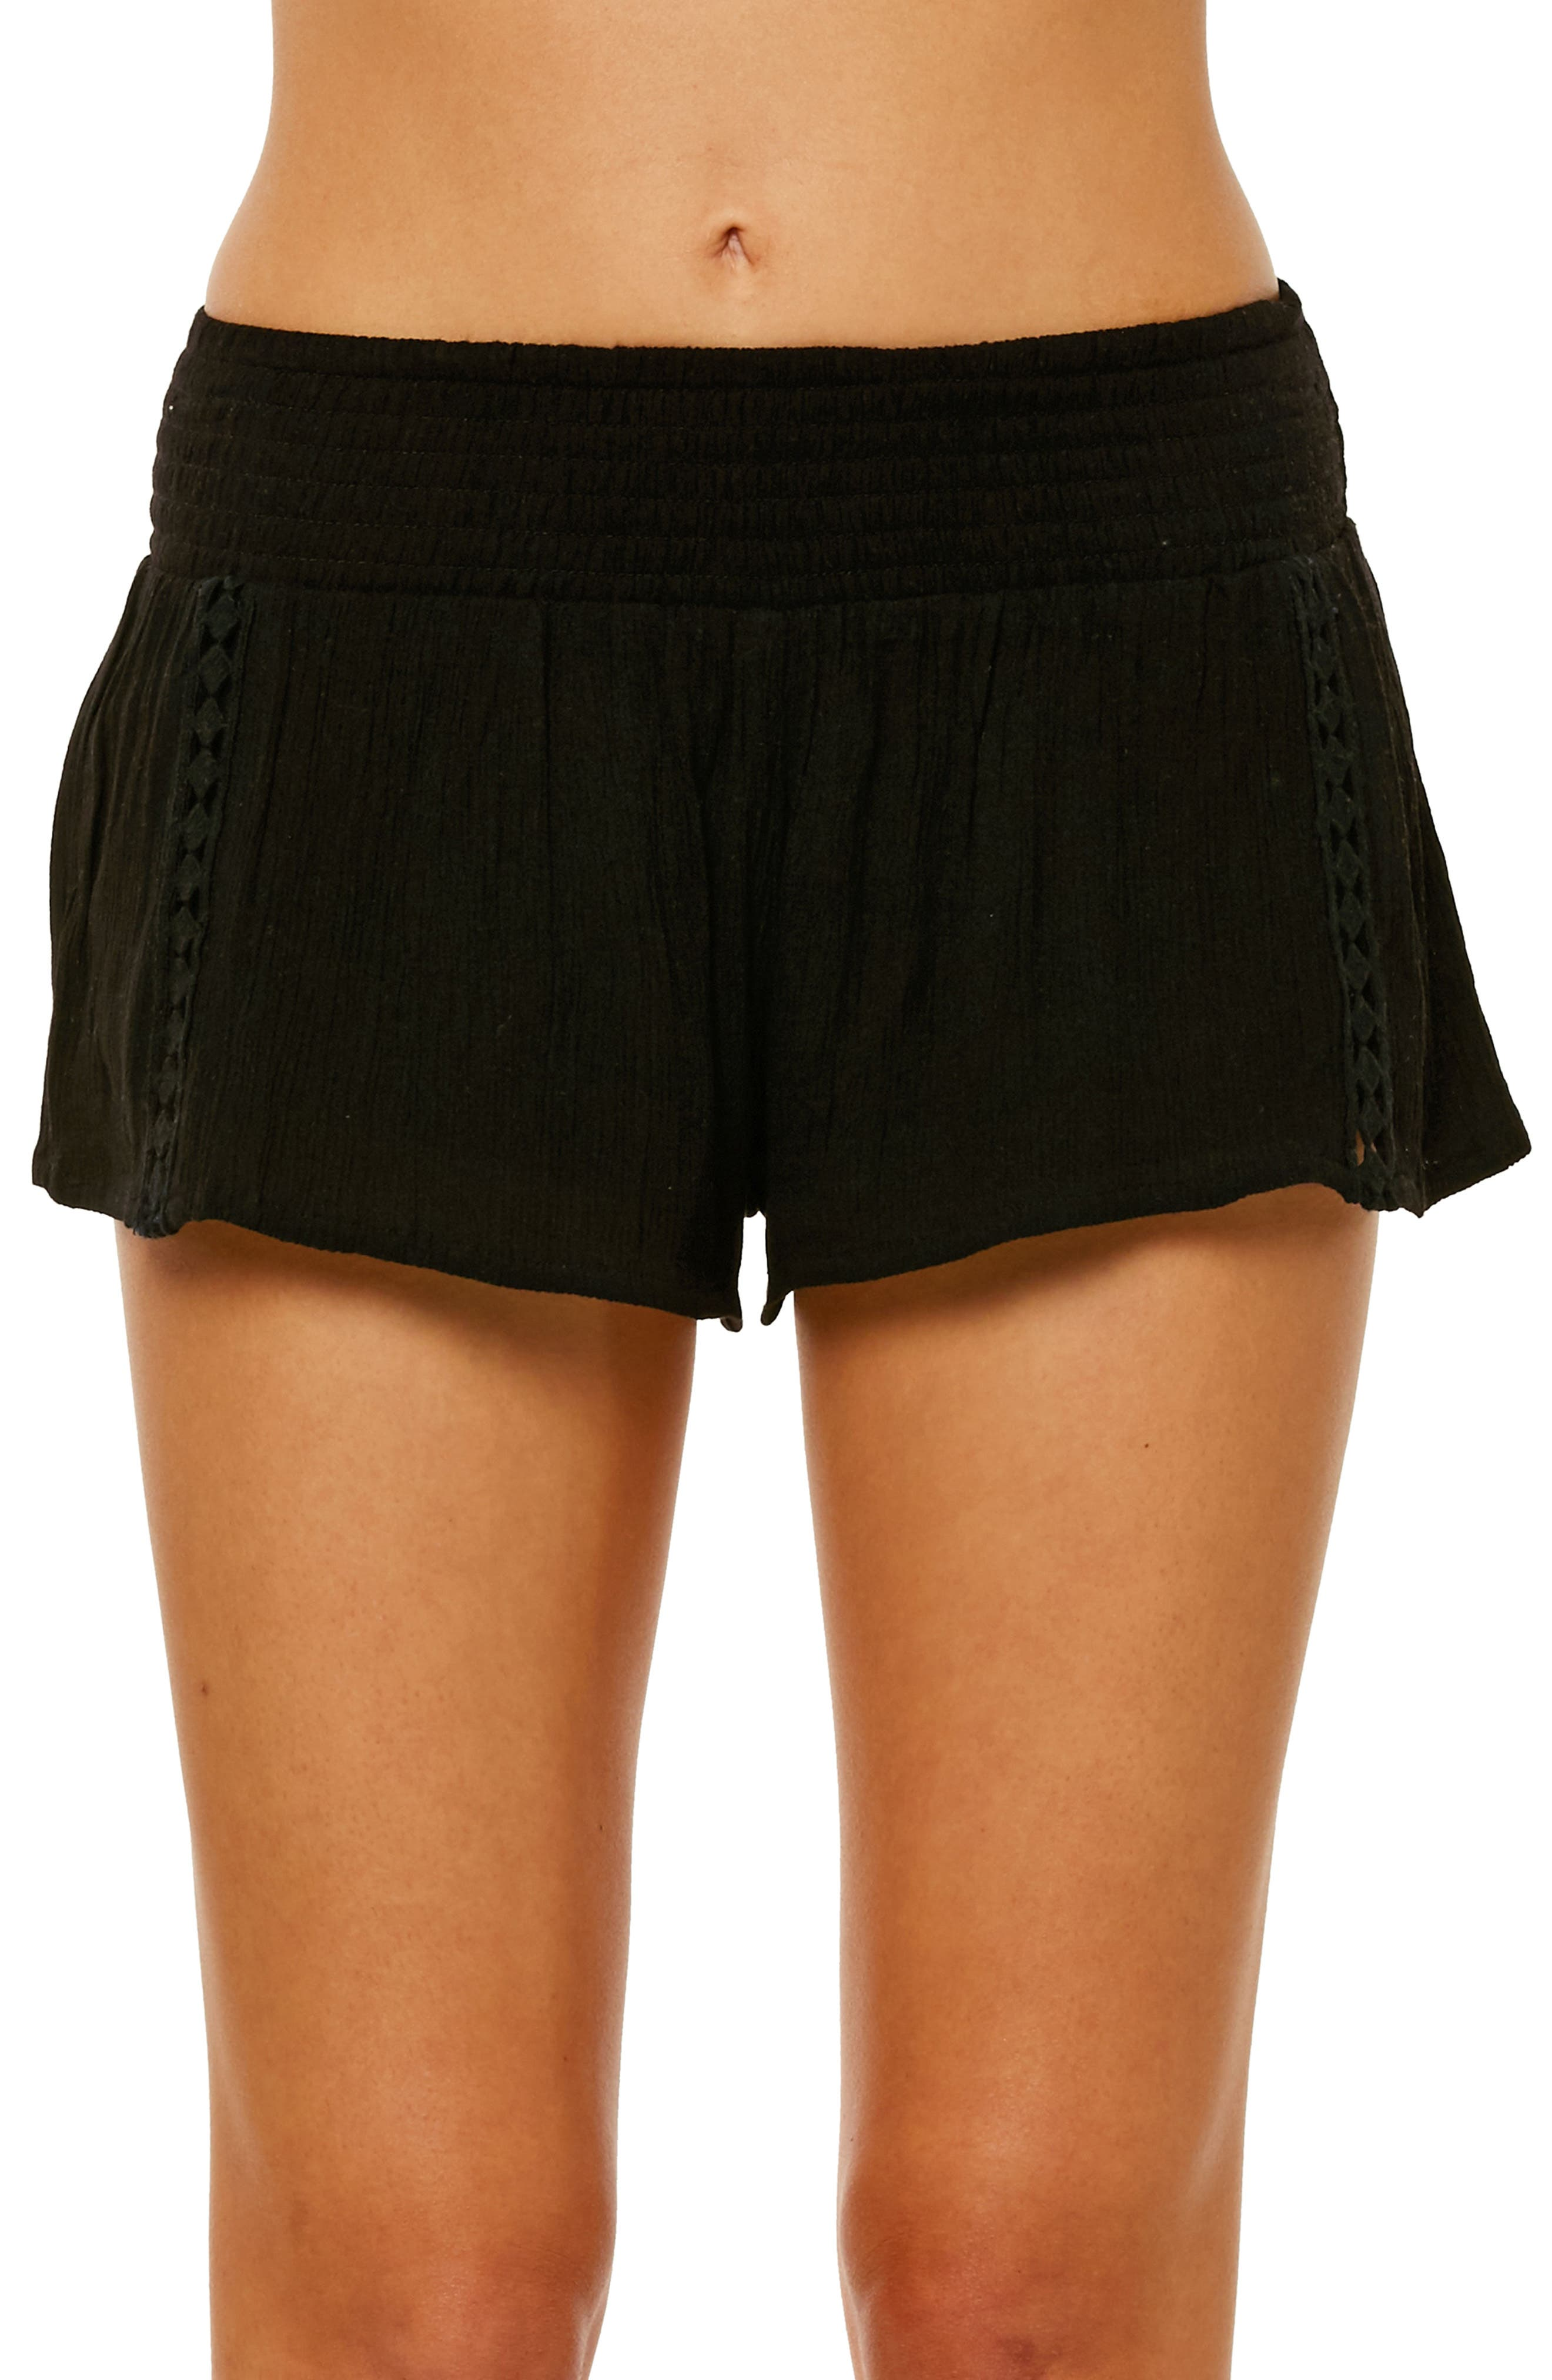 Elise Crochet Trim Shorts,                         Main,                         color, Black